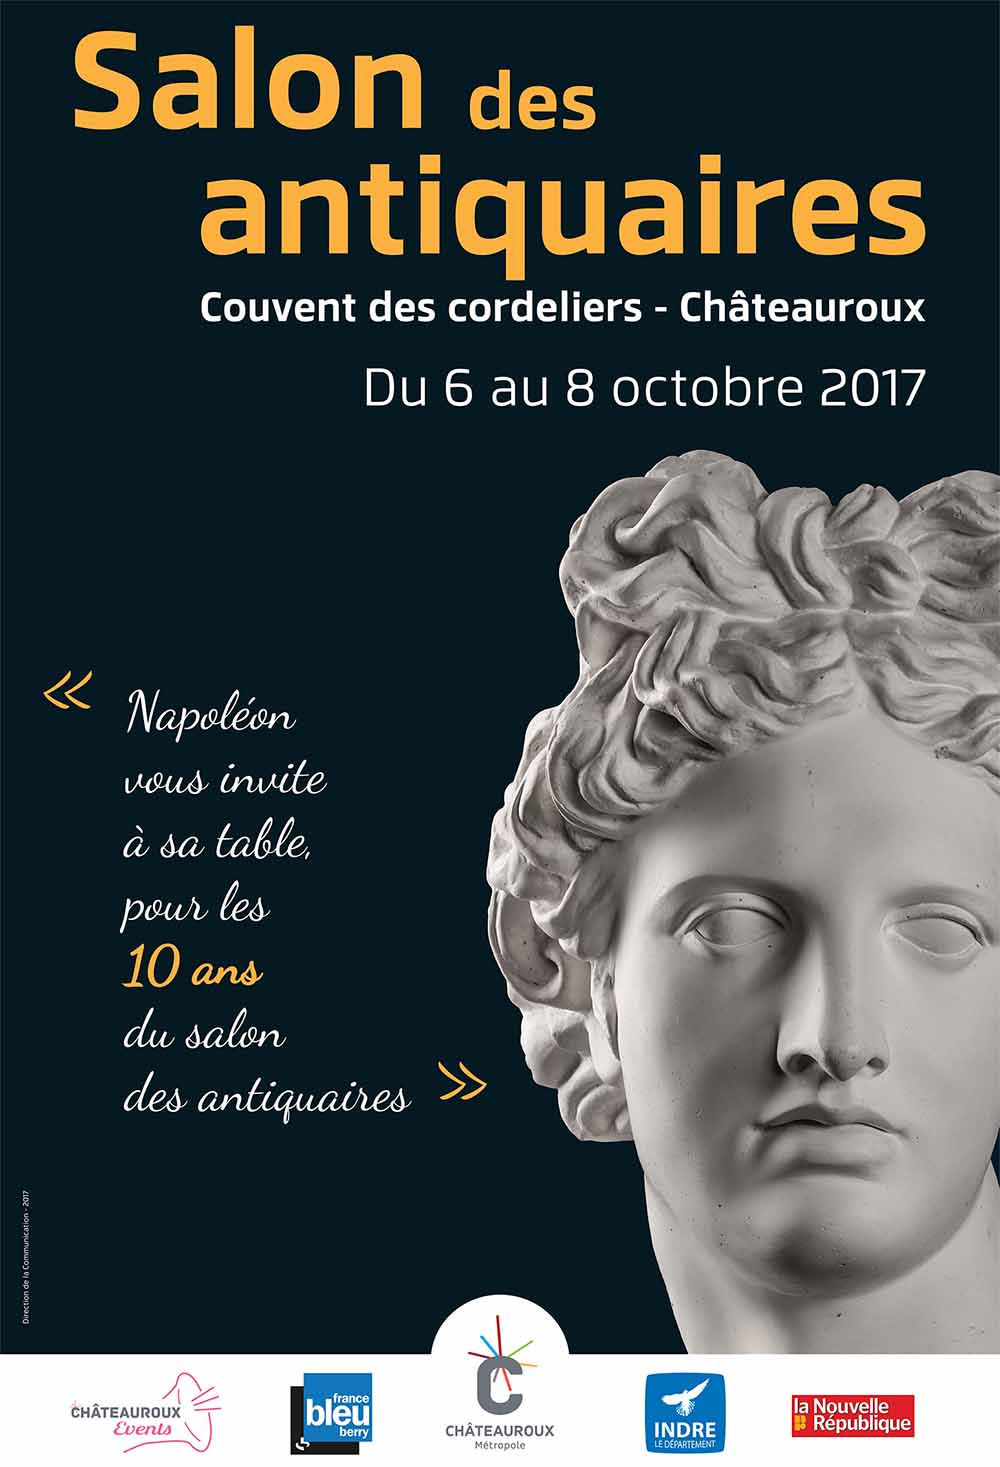 Le salon des antiquaires ch teauroux m tropole for Salon antiquaires 2017